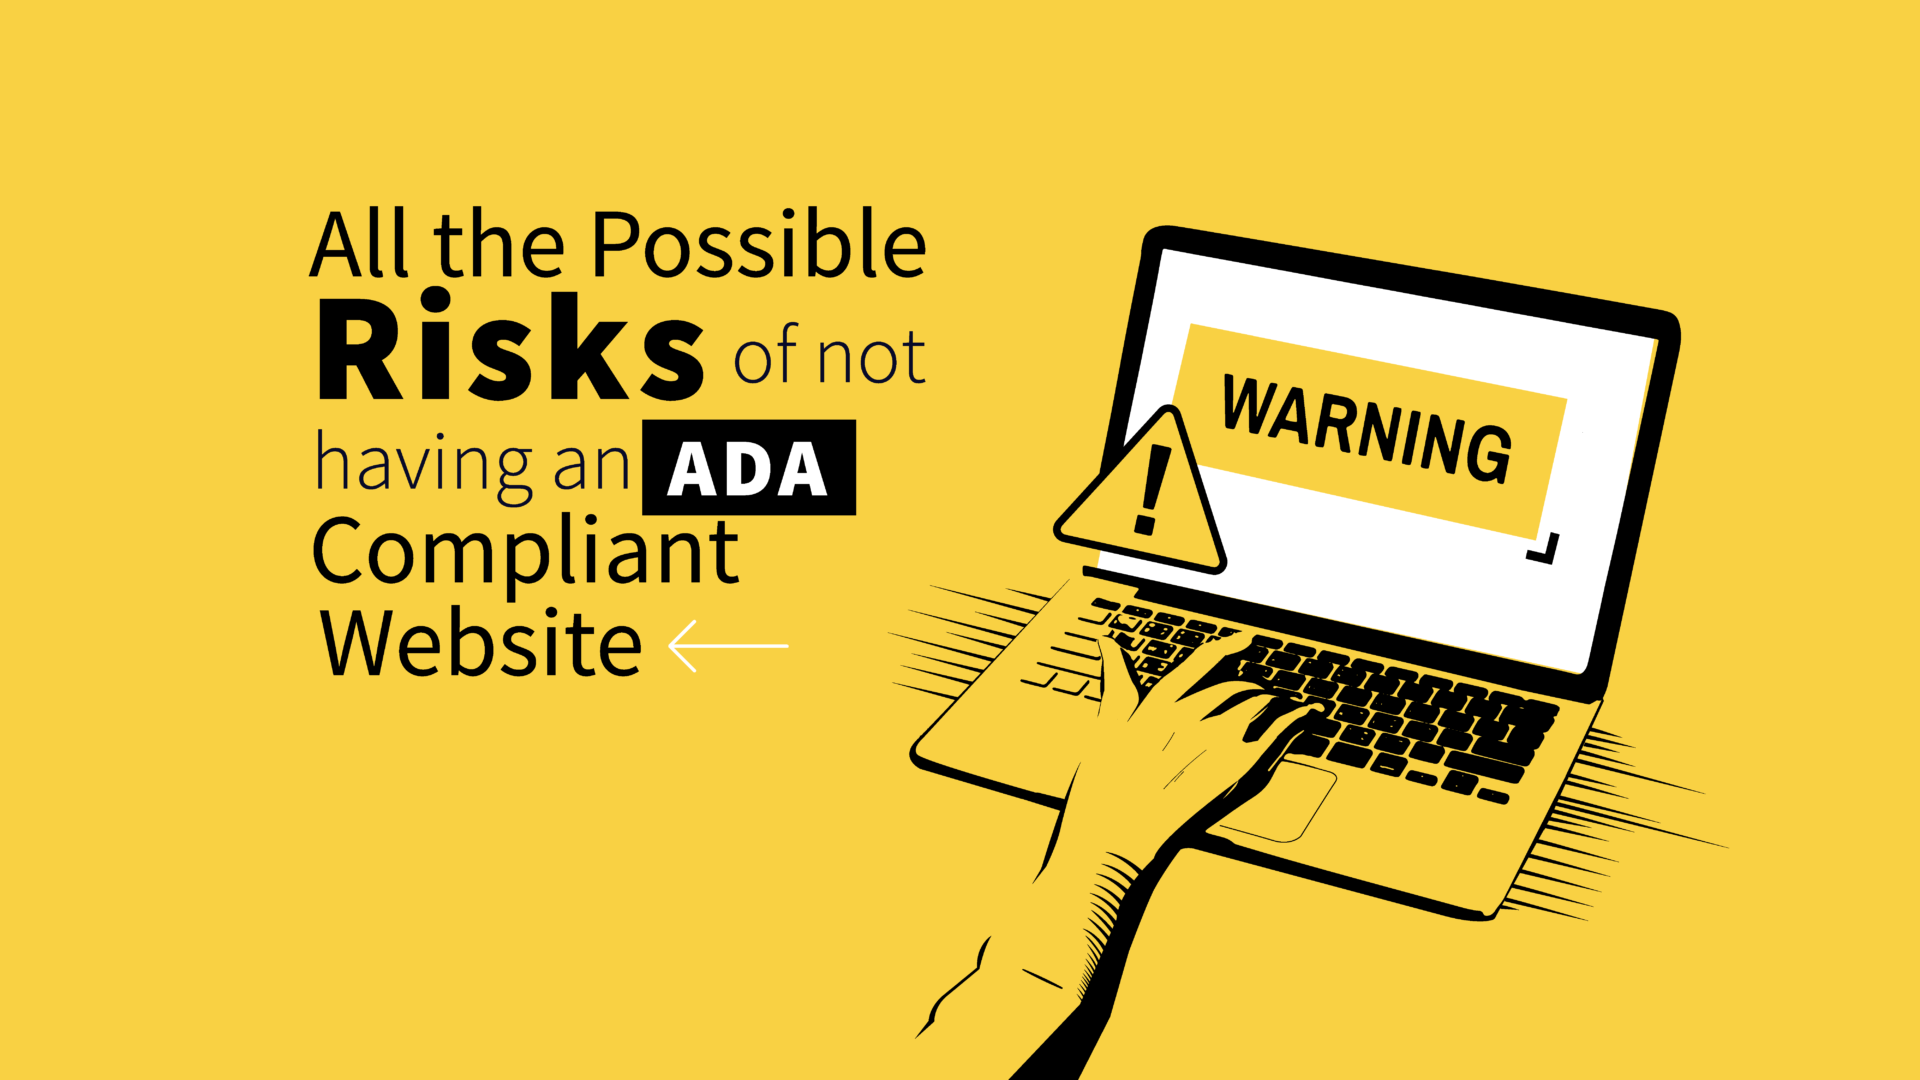 All the Possible Risks of Not Having an ADA Compliant Website